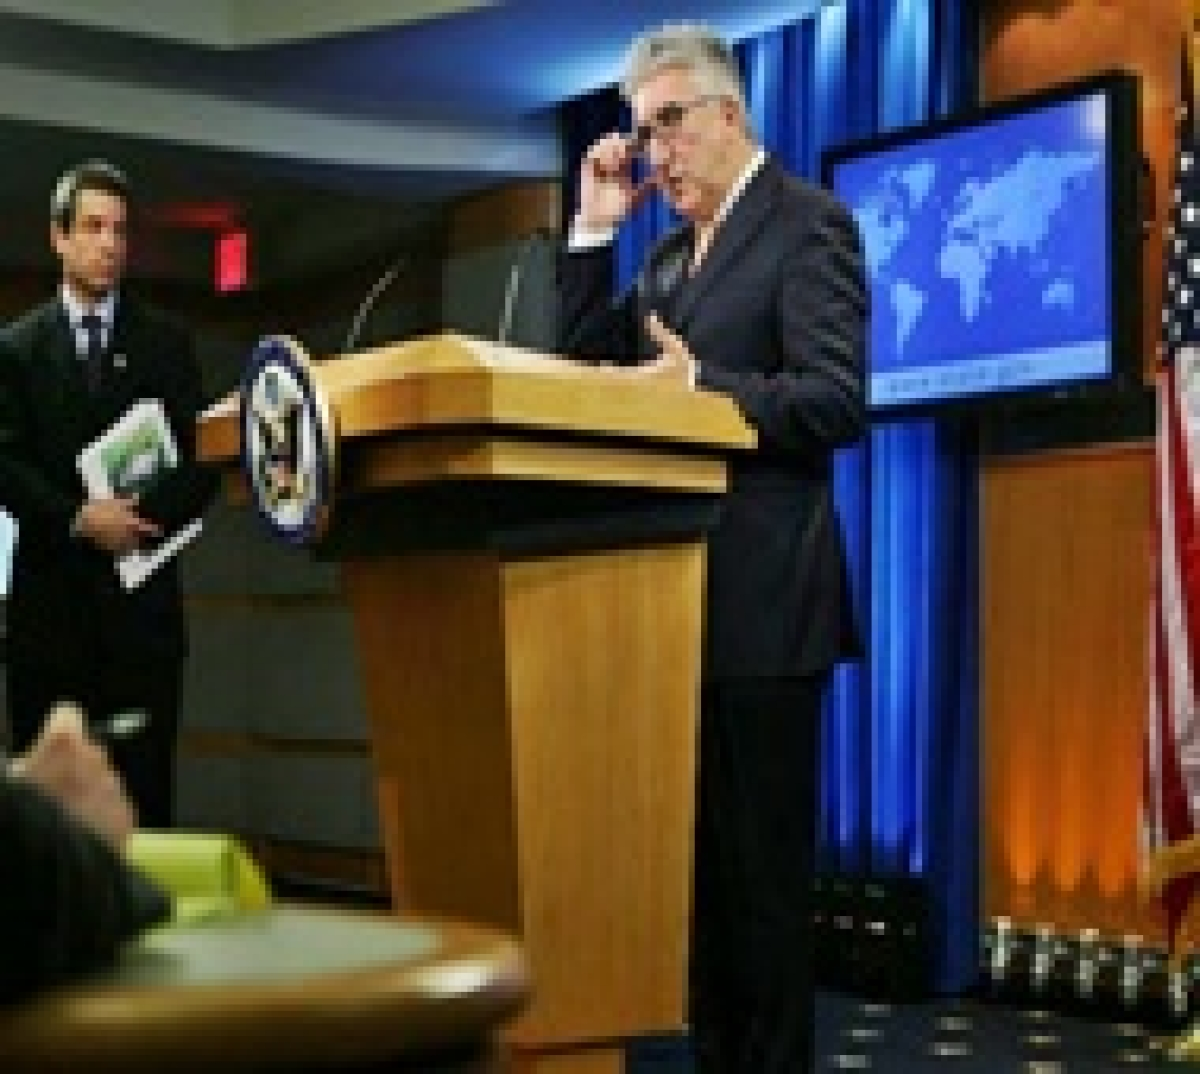 US supports India's rise as capable actor in region: Official